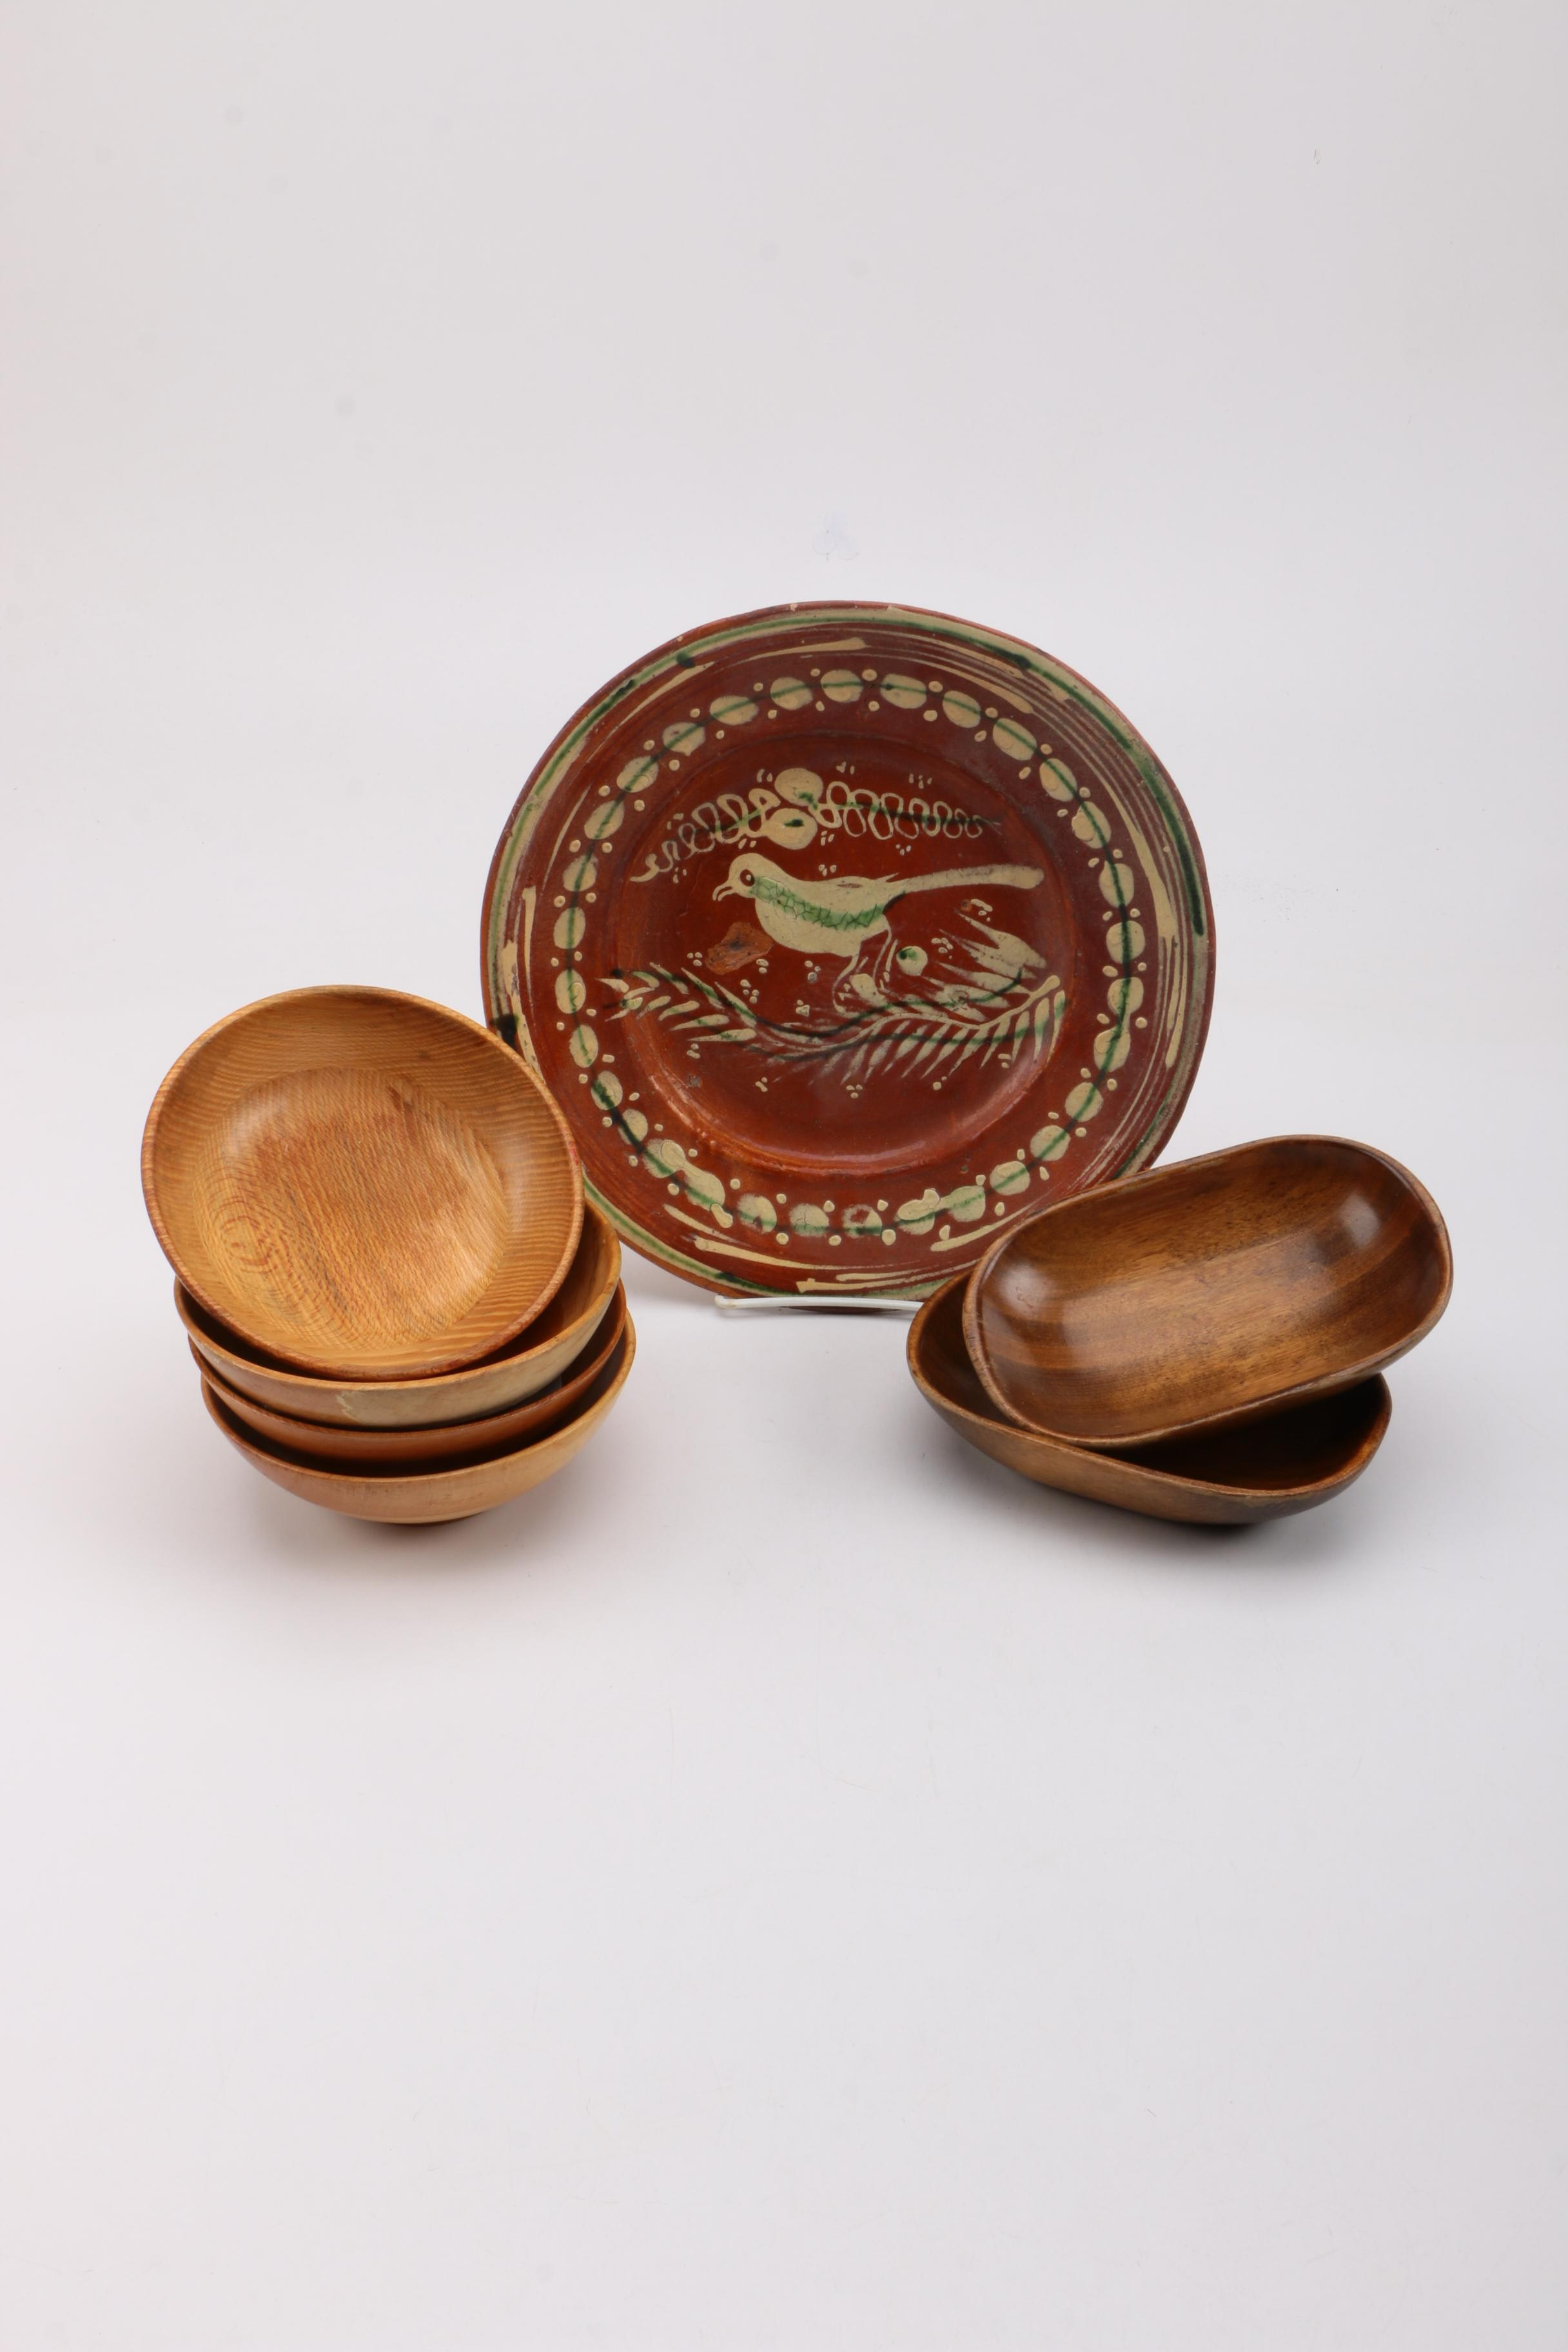 Hand-Painted Semi-Antique Redware Plate and Wooden Dishes